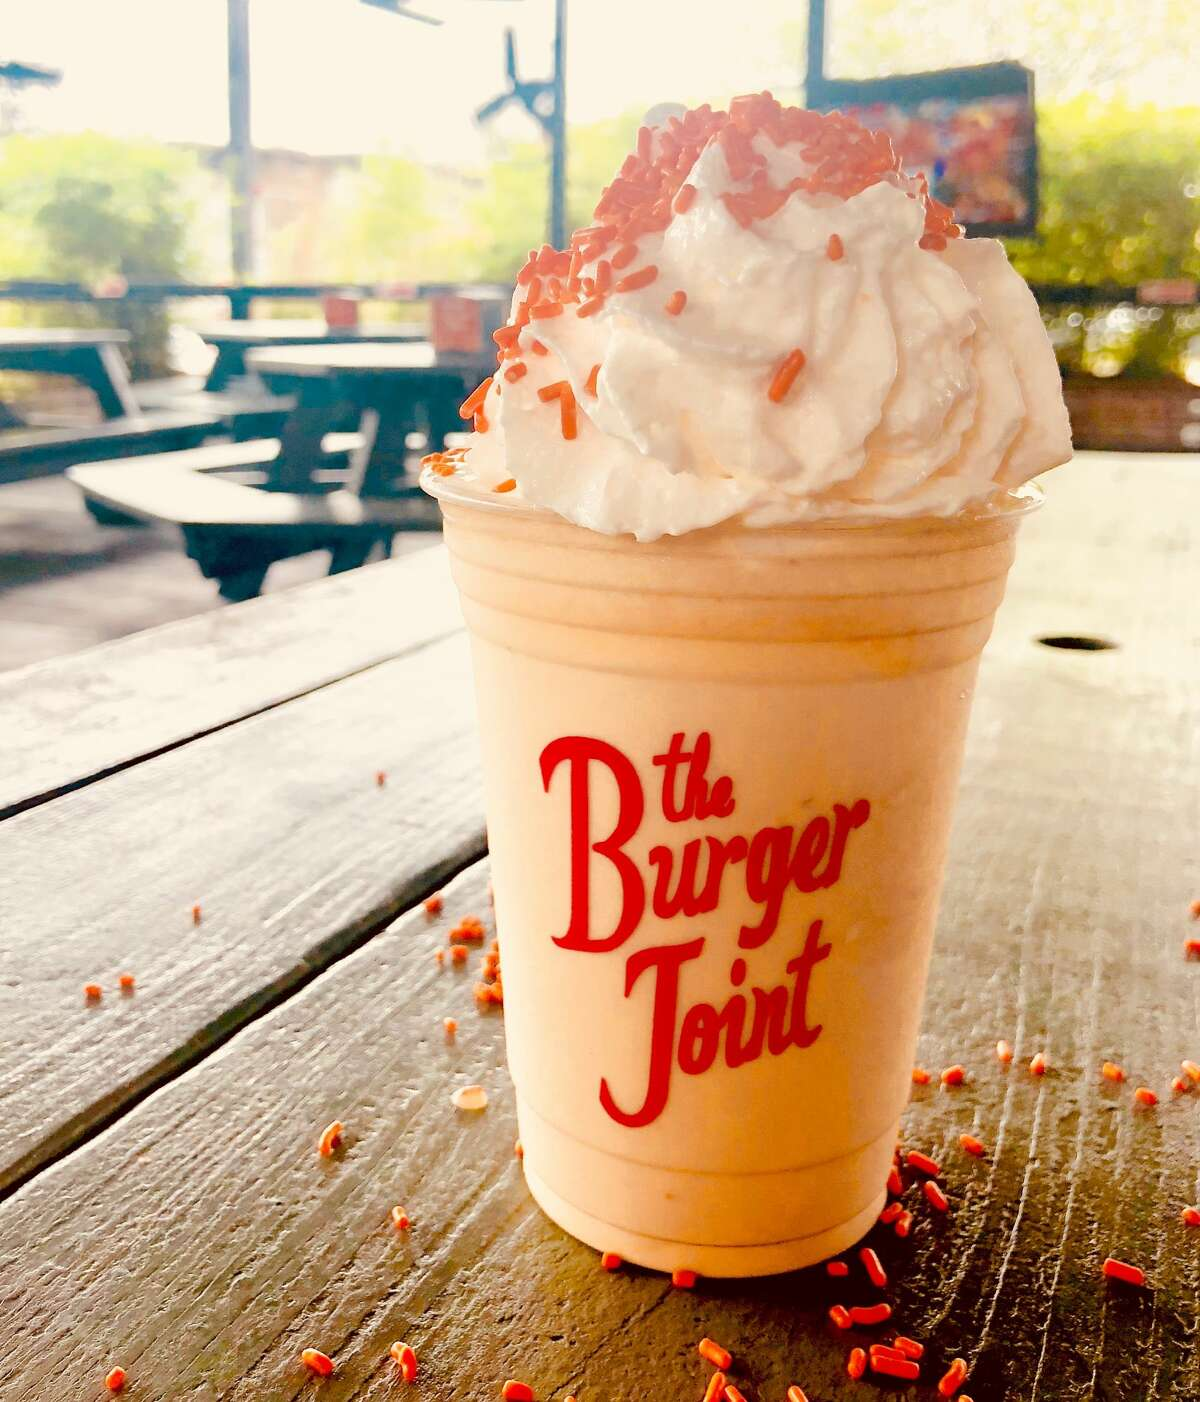 The Burger Joint - 2702 Montrose Blvd. For every Astros homer, The Burger Joint will give guests a voucher for a free milkshake. The restaurant will also have a new milkshake, the Crush City Dreamcsicle Shake